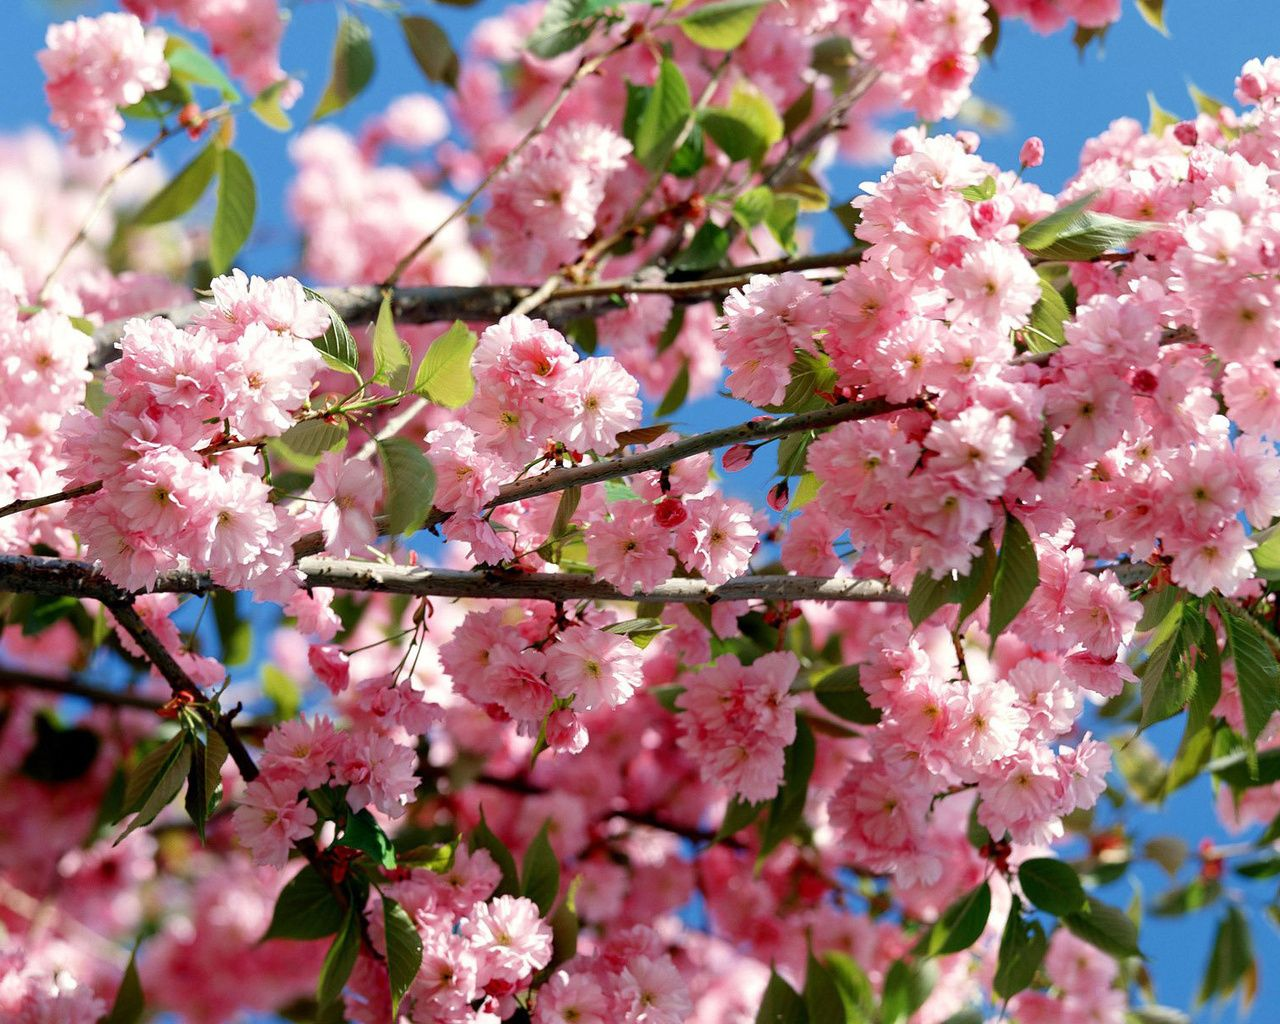 pictures of flowers | Colorful Flowers & Sky Wallpapers | HD ...